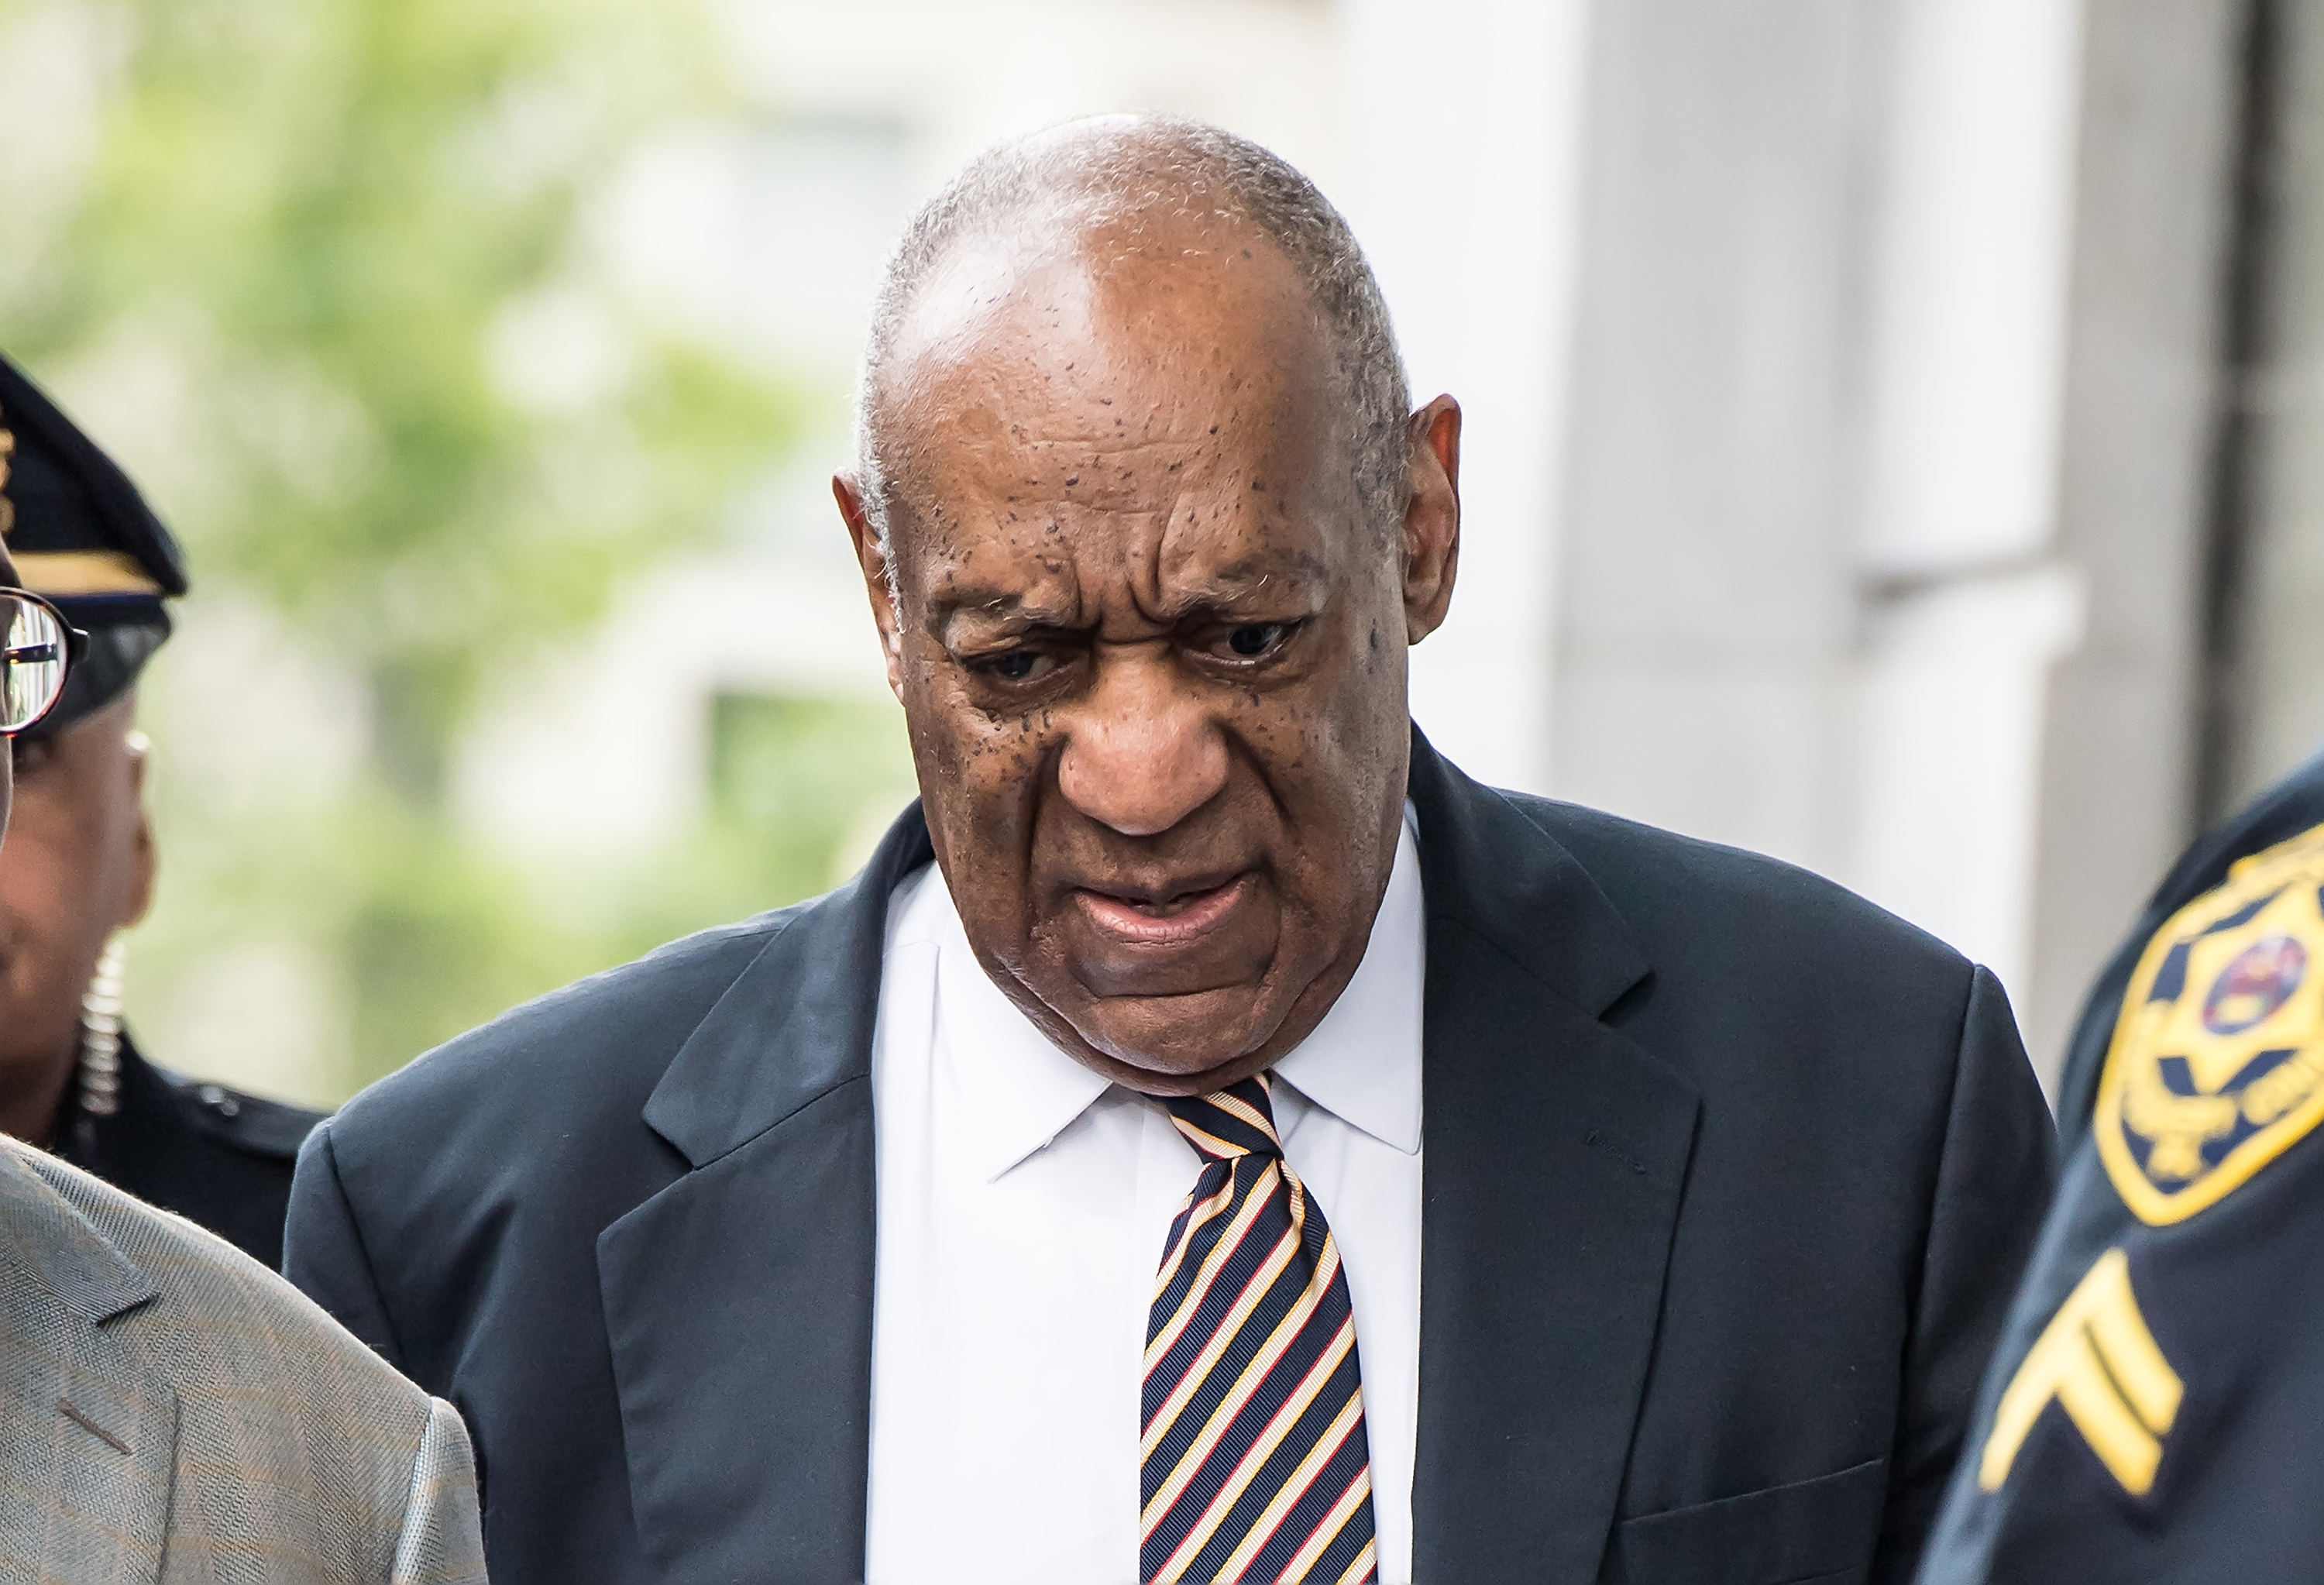 Bill Cosby arrives at Montgomery County Courthouse in Norristown, Penn., on June 14, 2017.